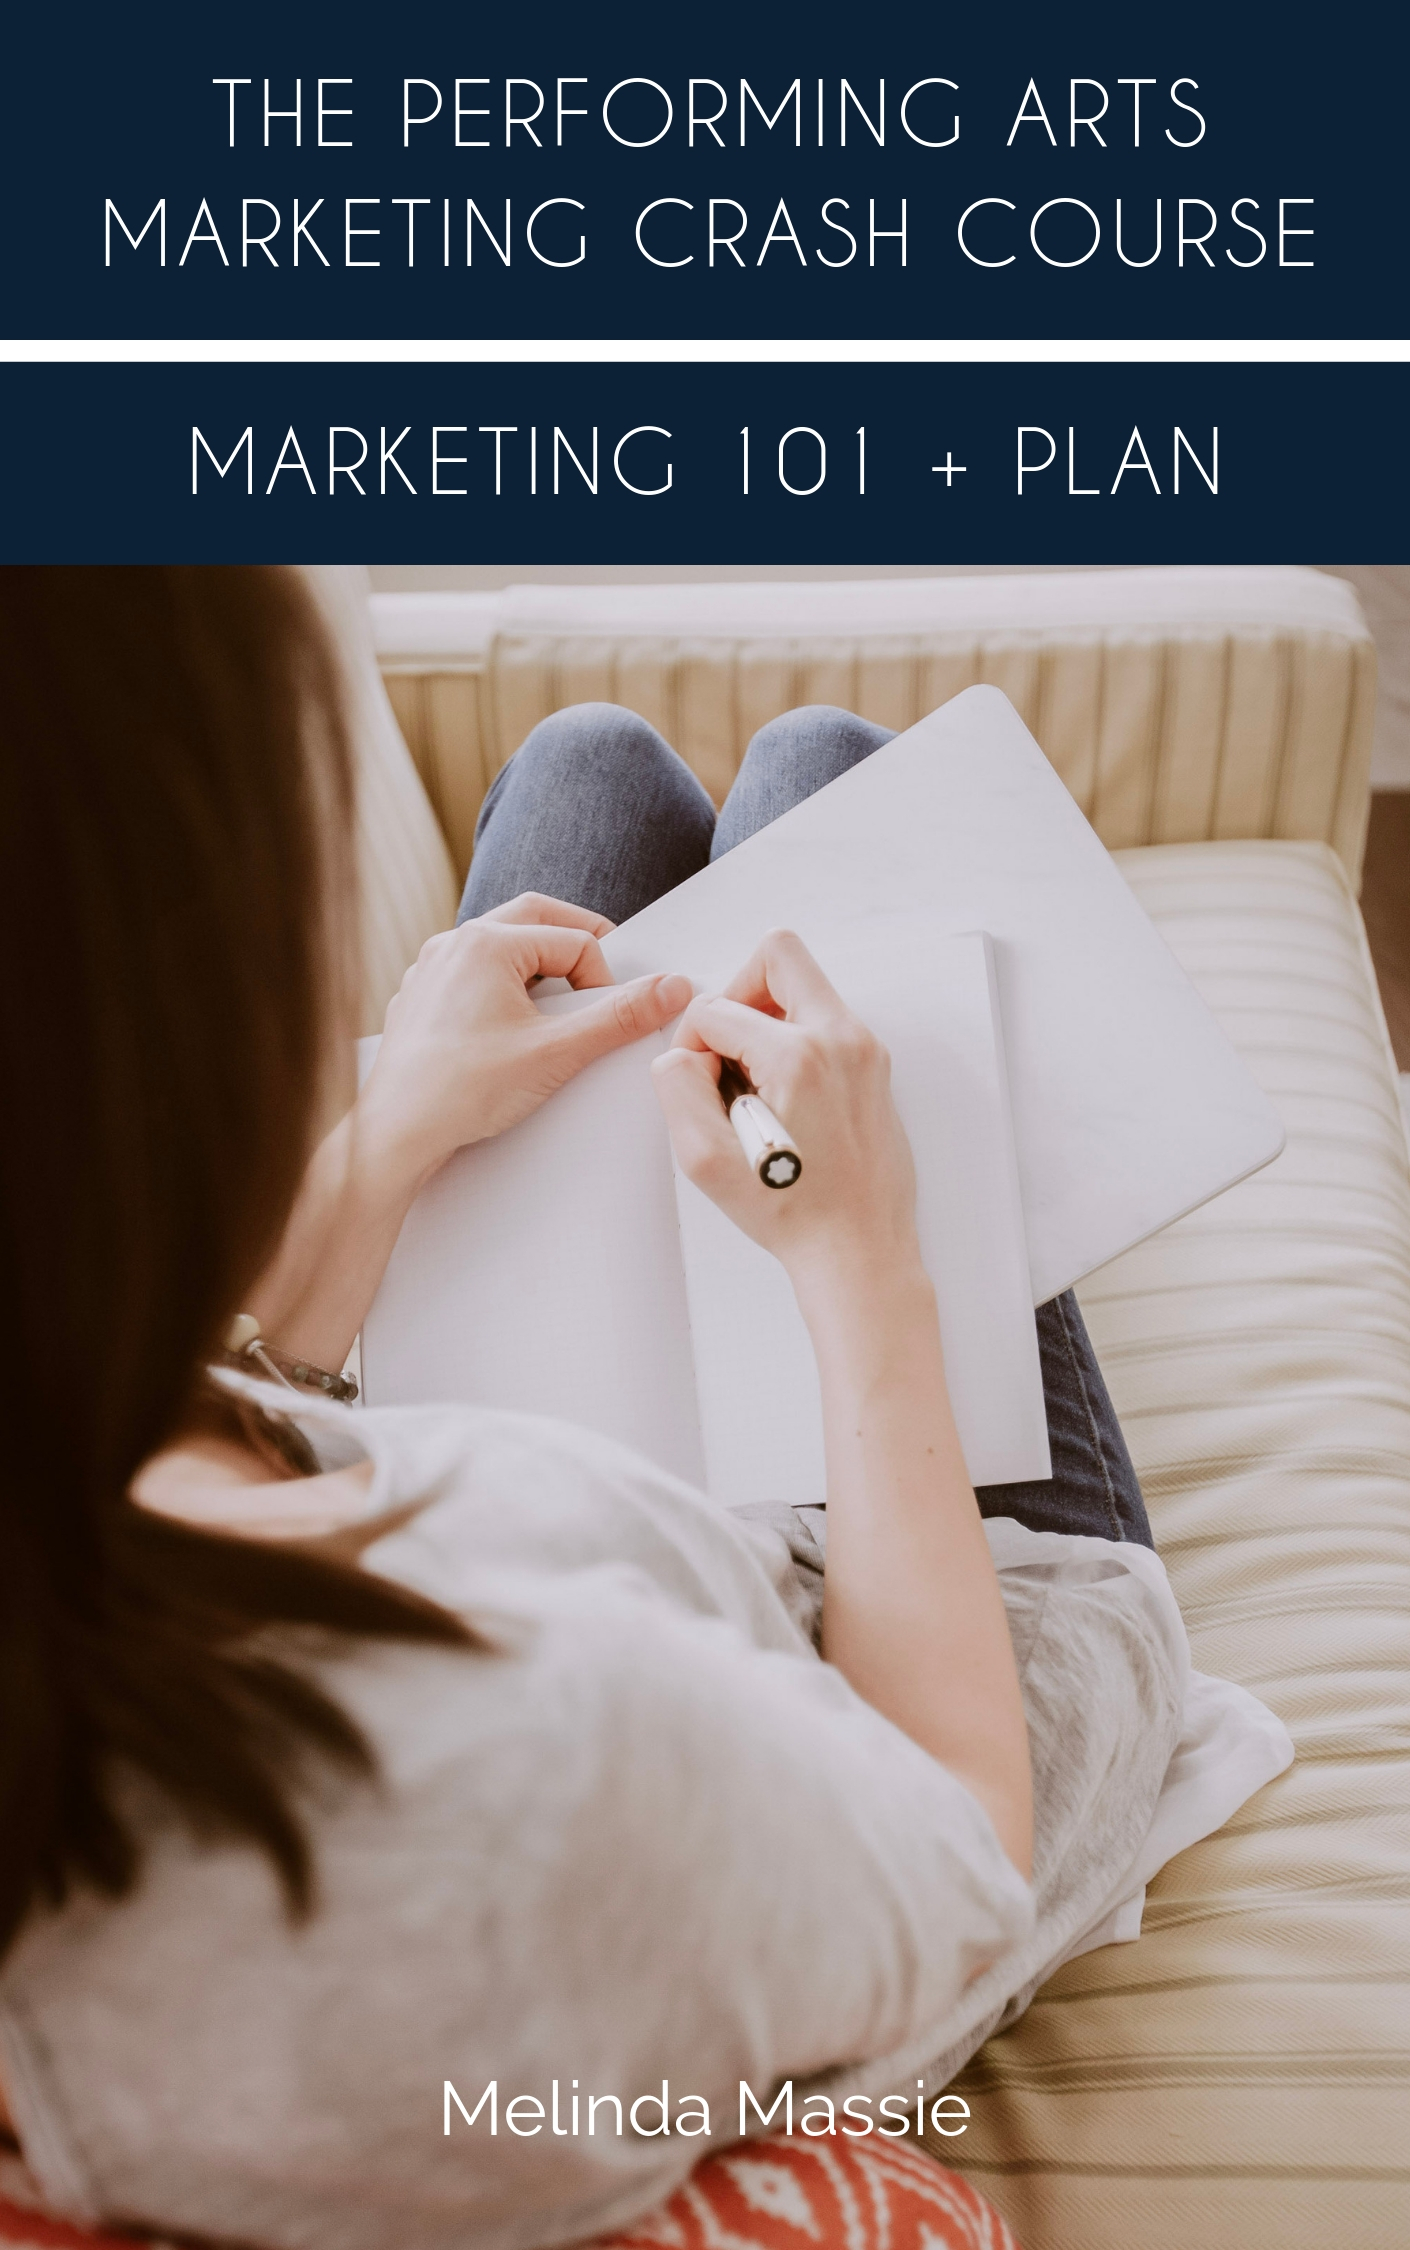 Mktg 101 Workbook Cover.jpg